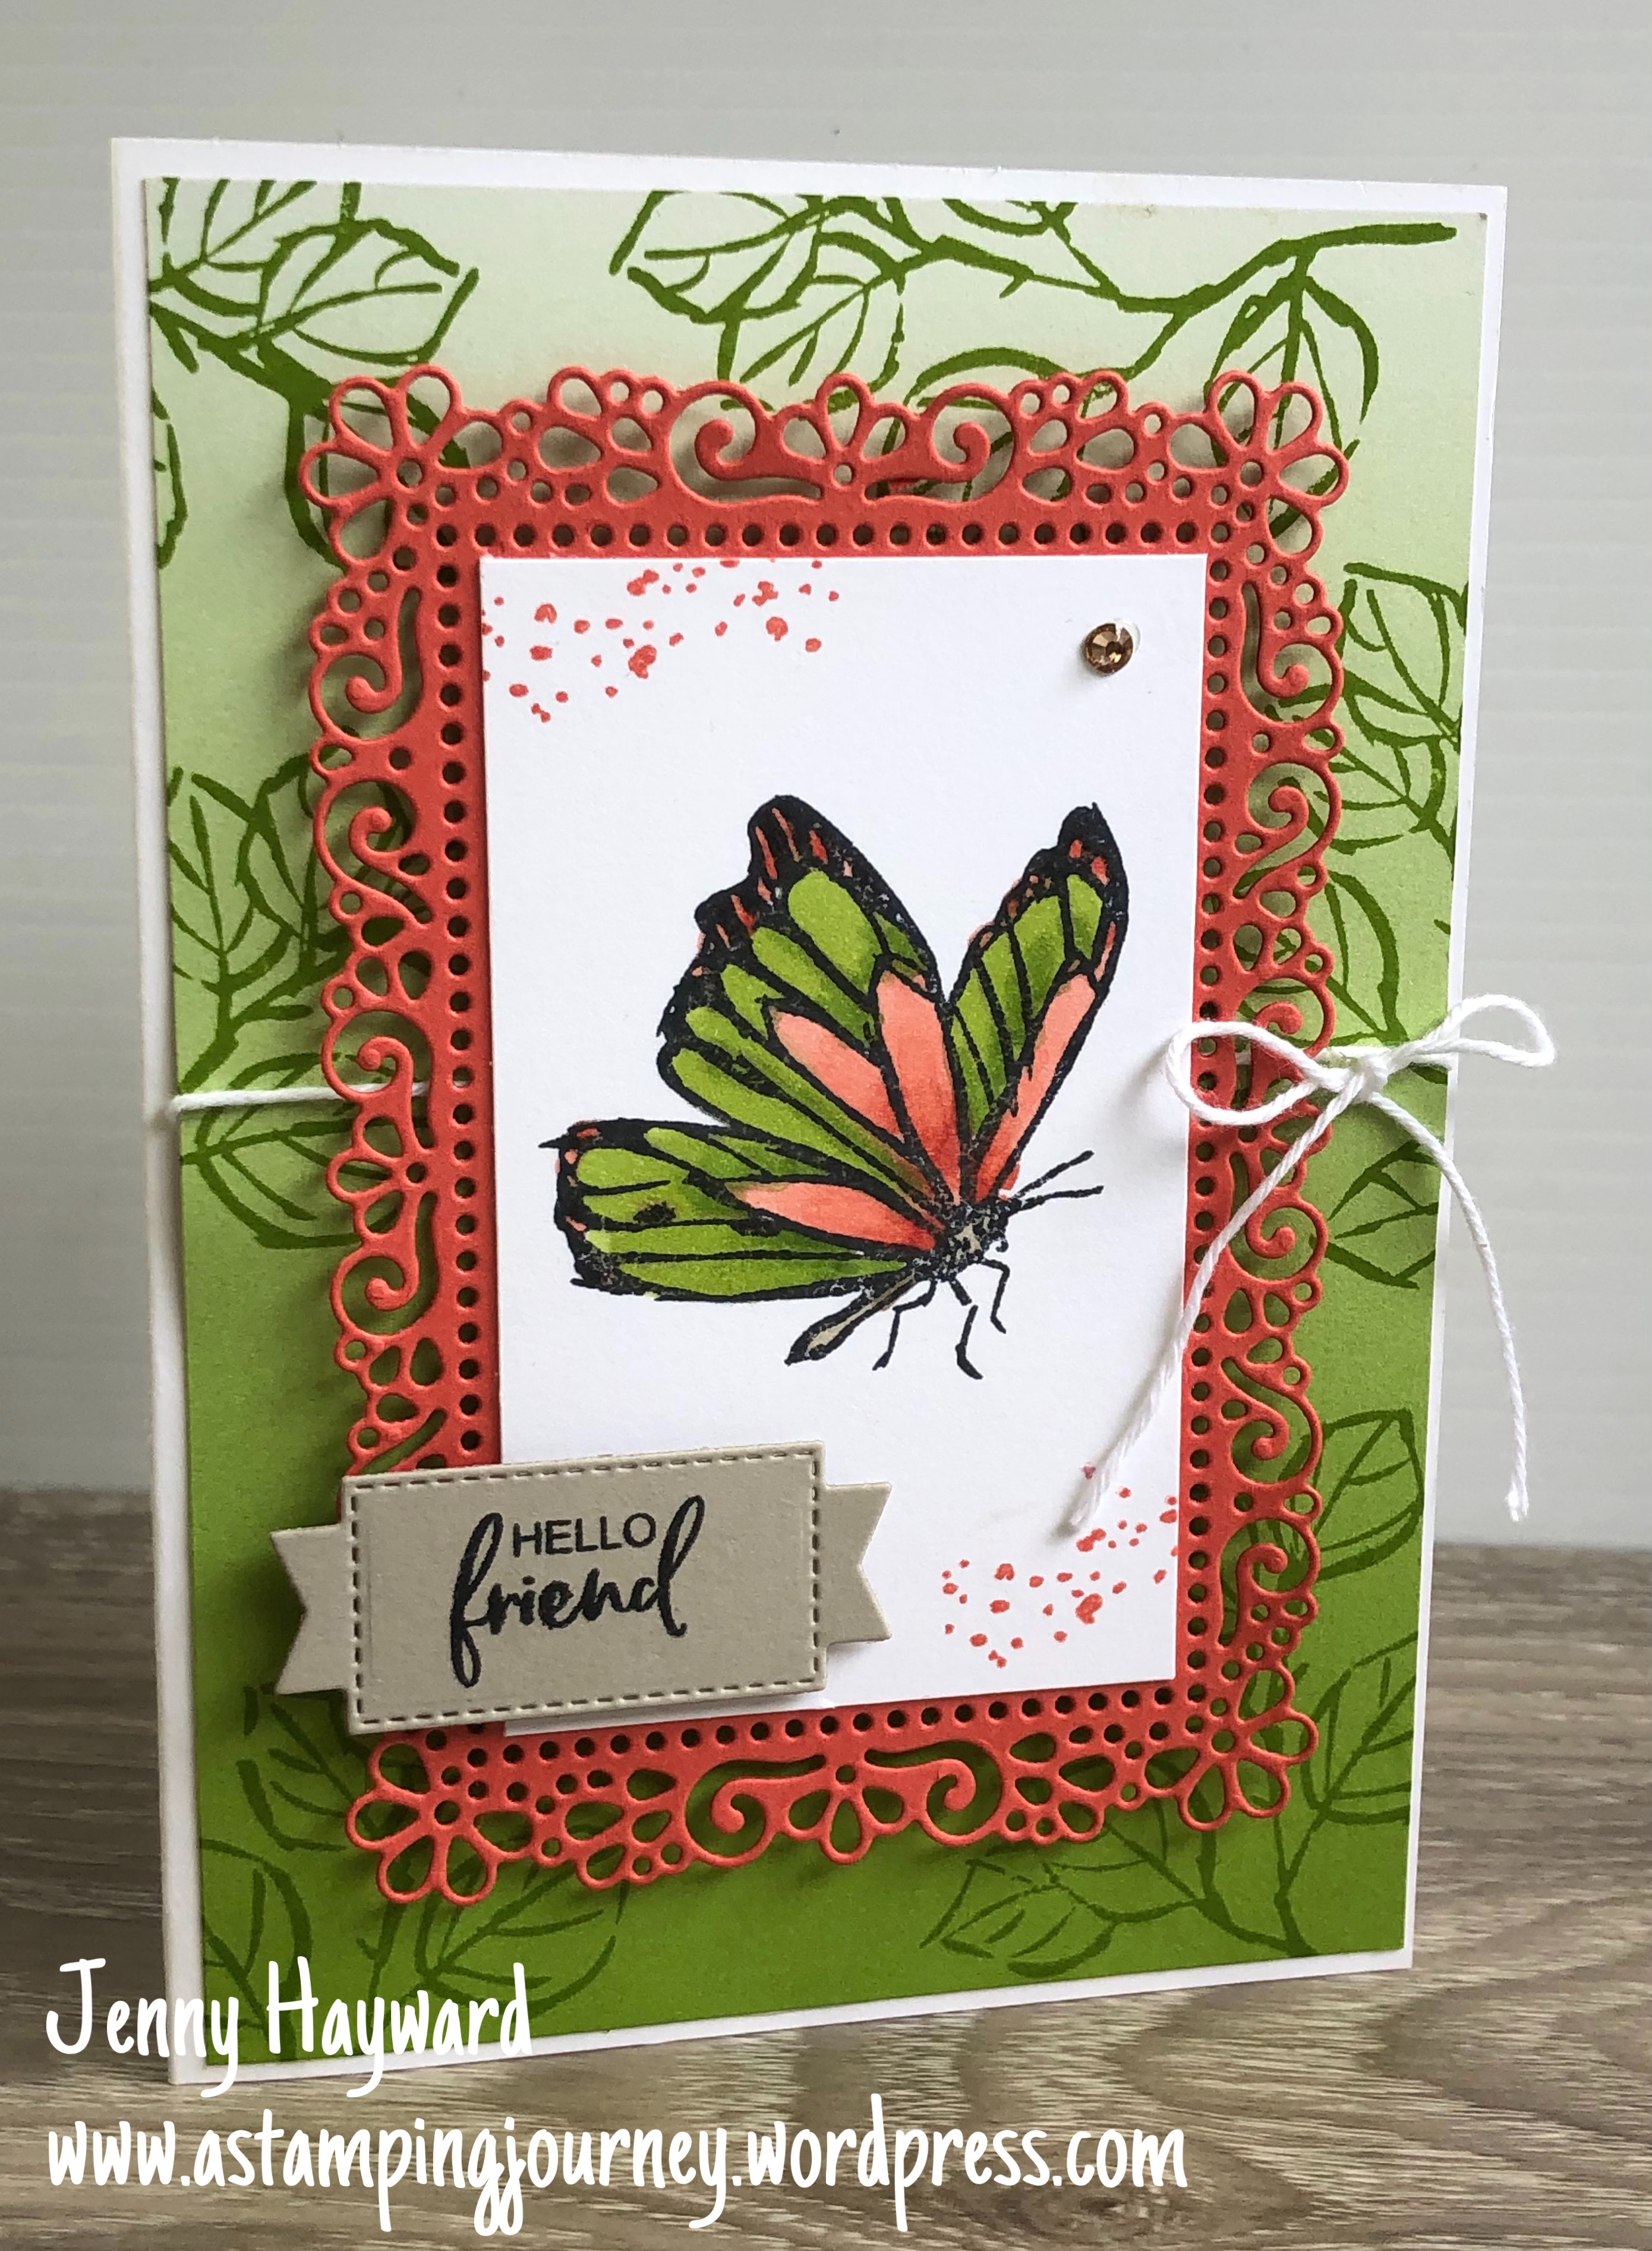 Stampin' Up! A Touch of Ink stamp set